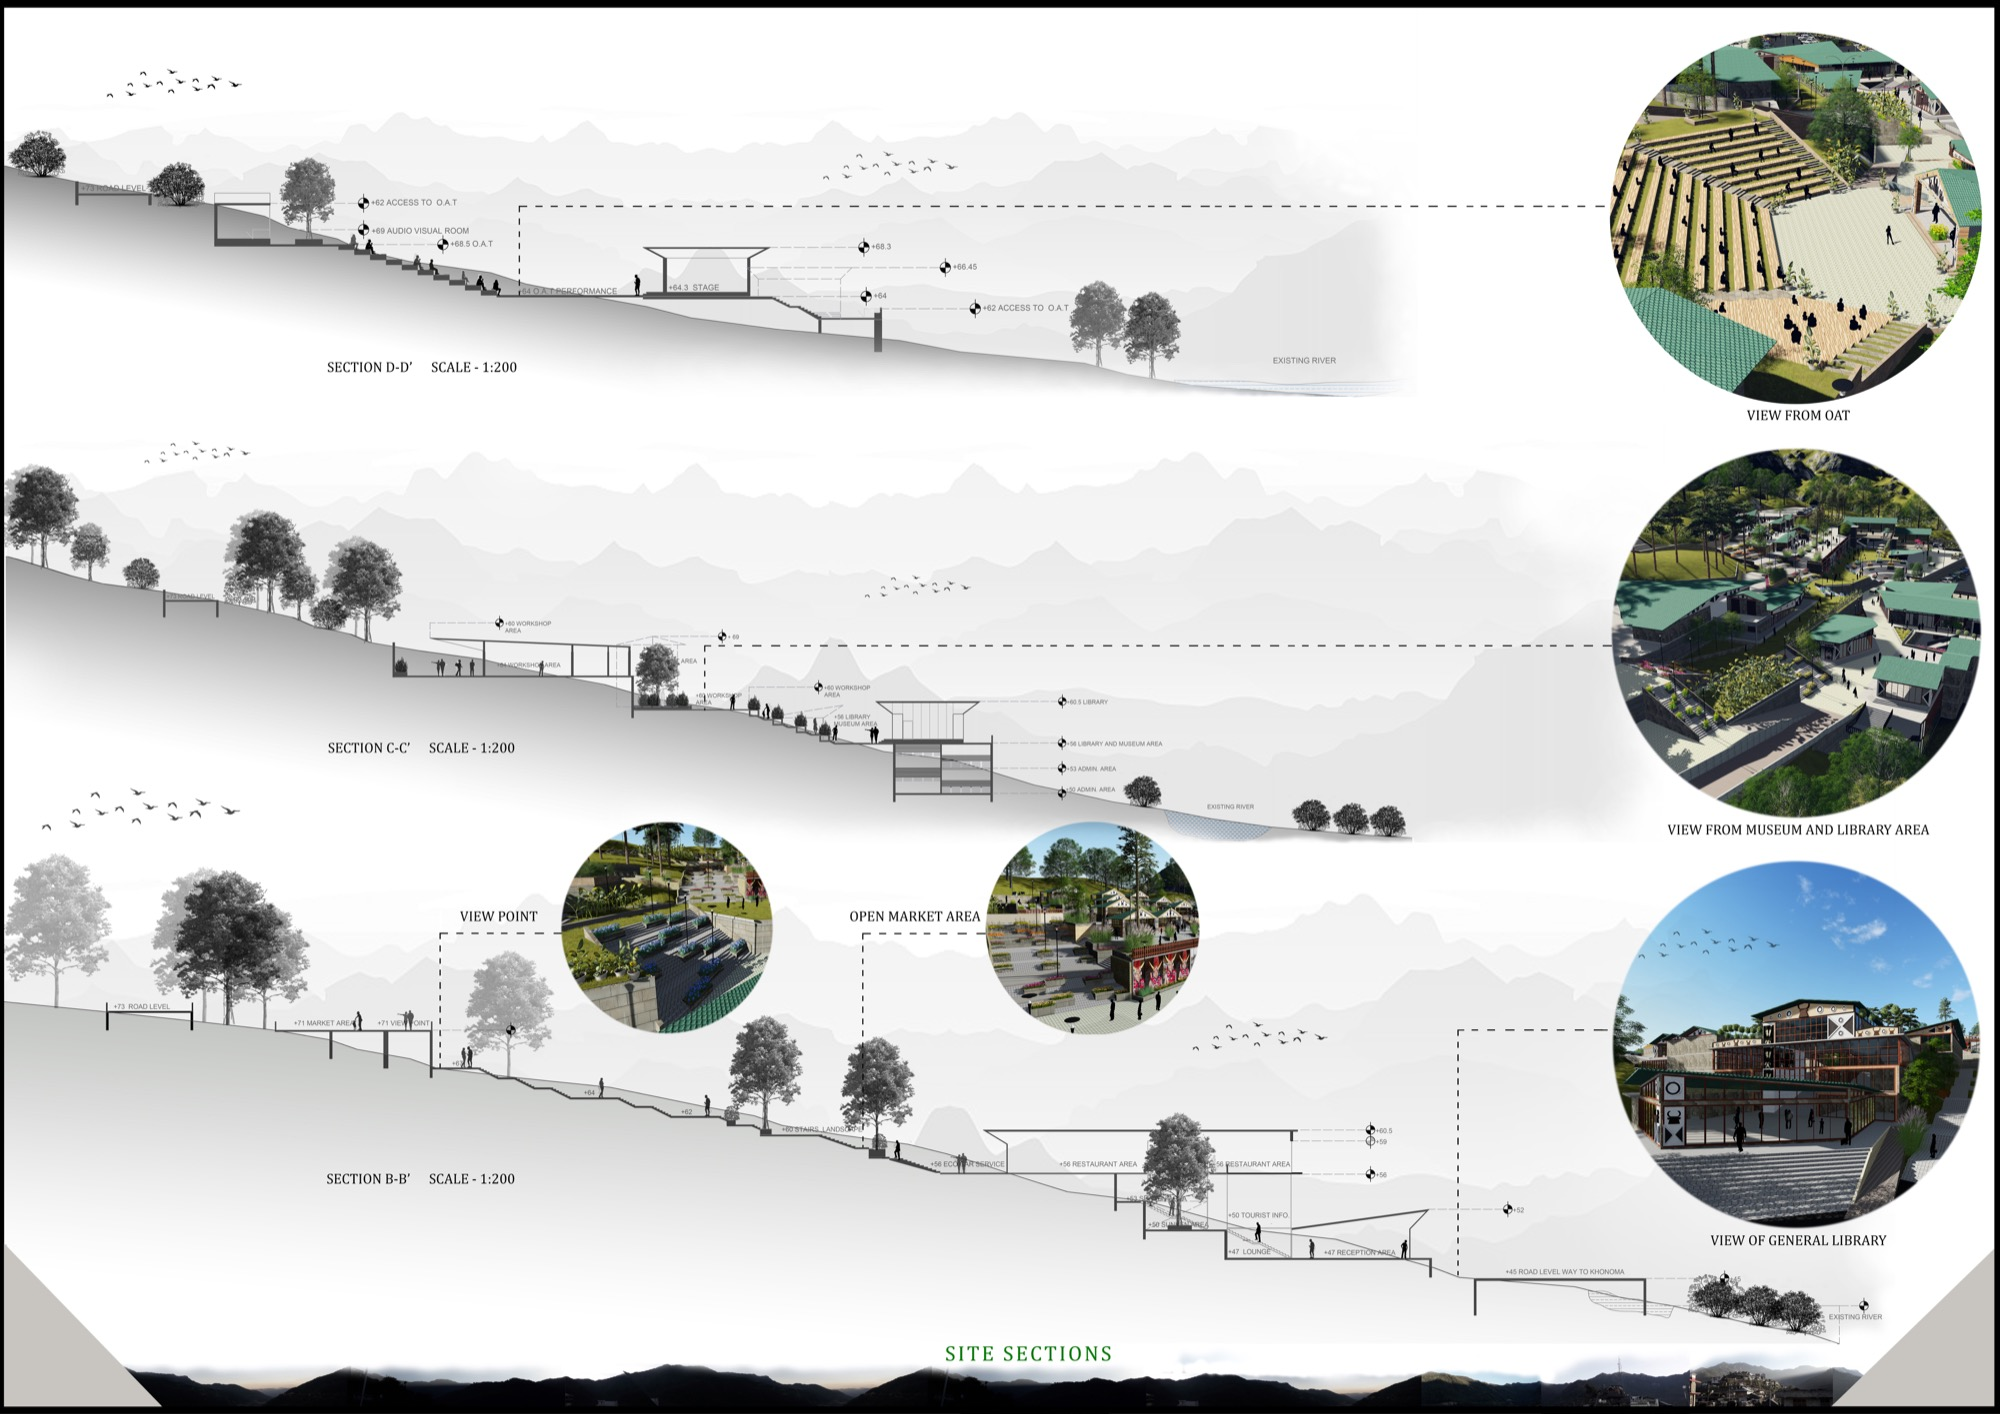 B.Arch Thesis: Eco-Tourist Hub of KHONOMA Village, By Shanjo A. Kithan, ITM University-Gwalior 20